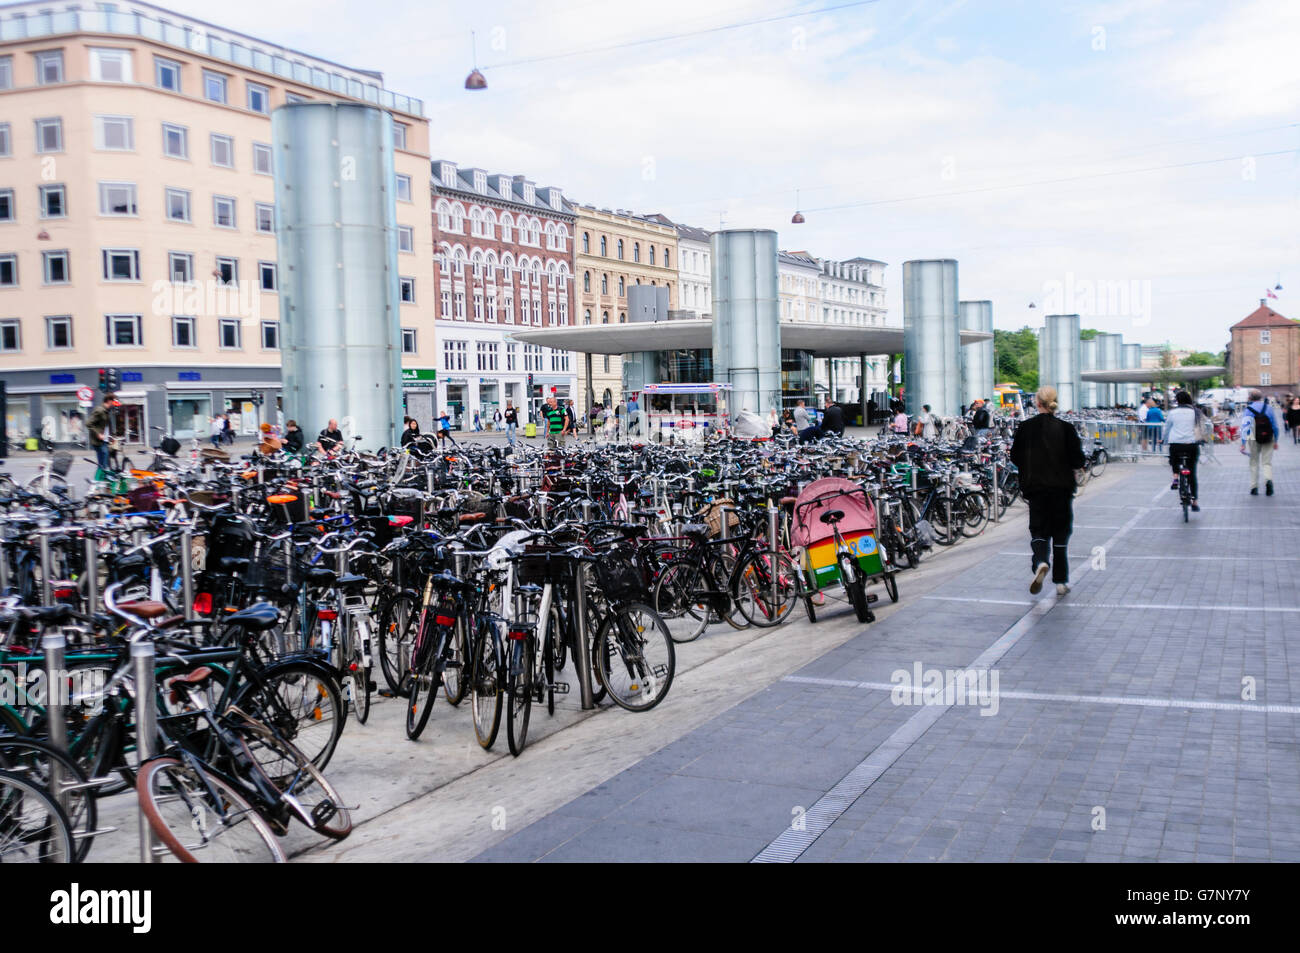 how to pay for parking in copenhagen